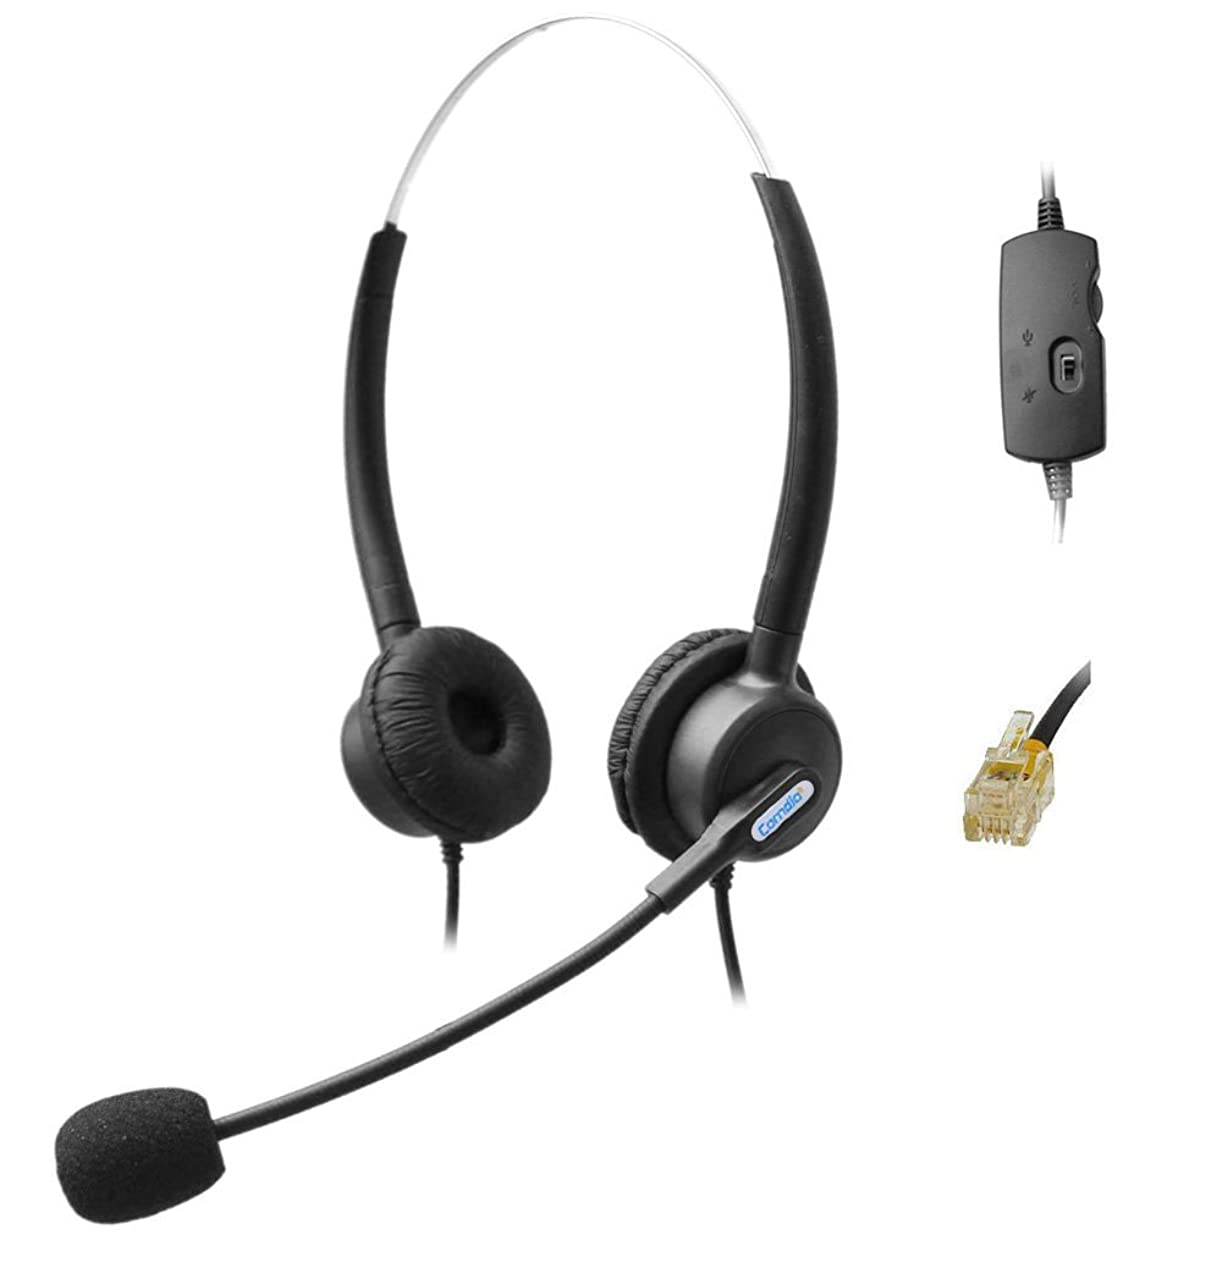 Comdio H203VGA Corded RJ Headset with Flexible Noise Canceling Mic + Volume Mute Control for Snom 320 870 Panasonic KX-T Series Avaya Cisco Grandstream Yealink T48G Huawei Office Telephone IP Phones